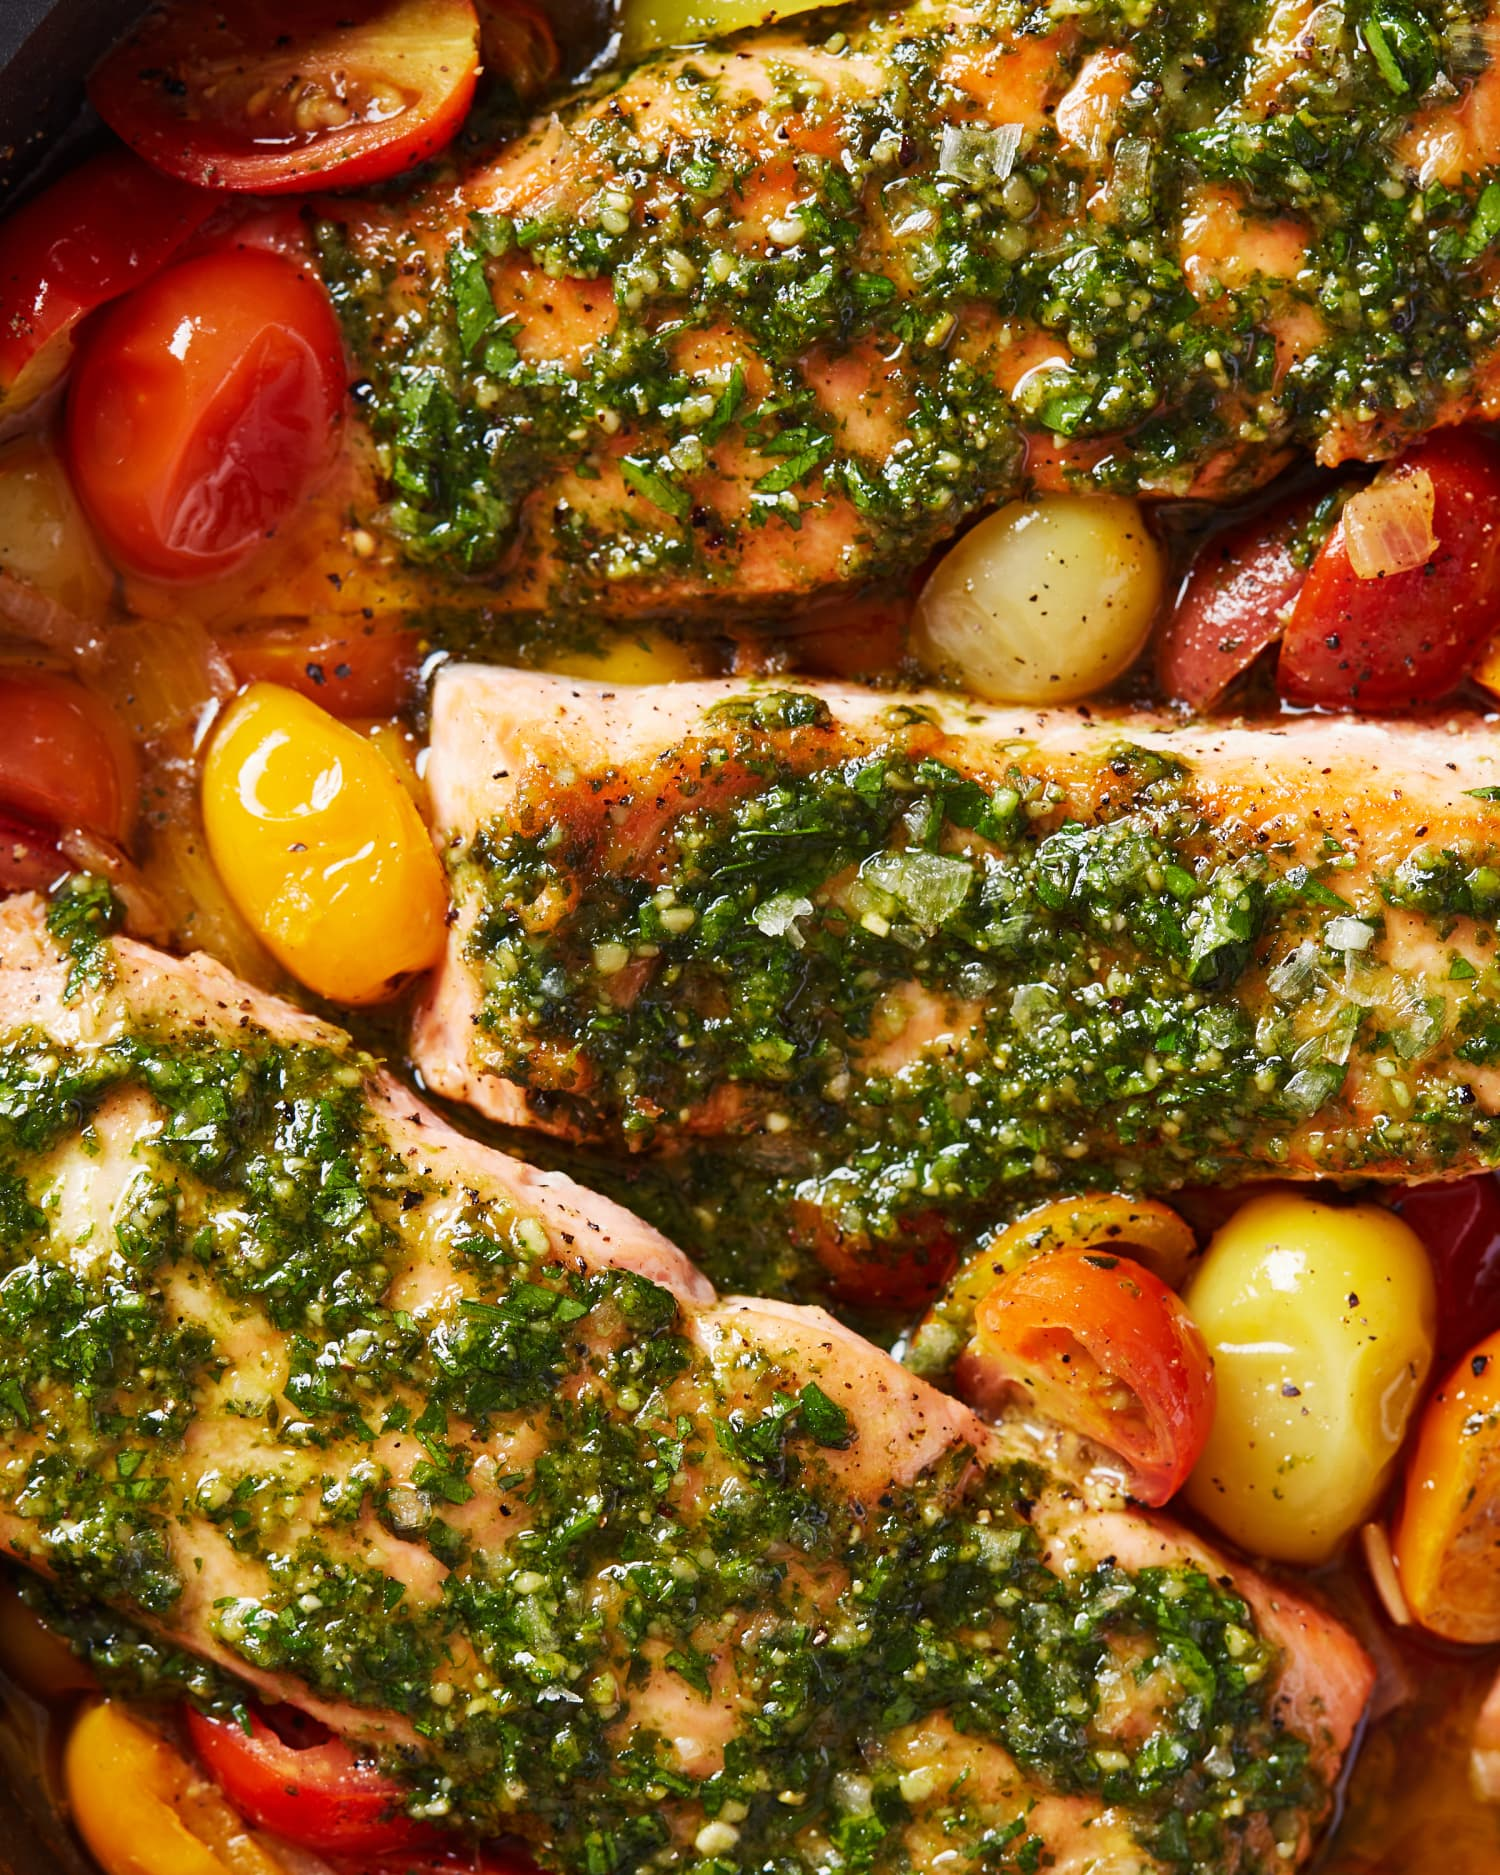 Pesto Salmon with Burst Tomatoes Proves Simple Can Be Delicious